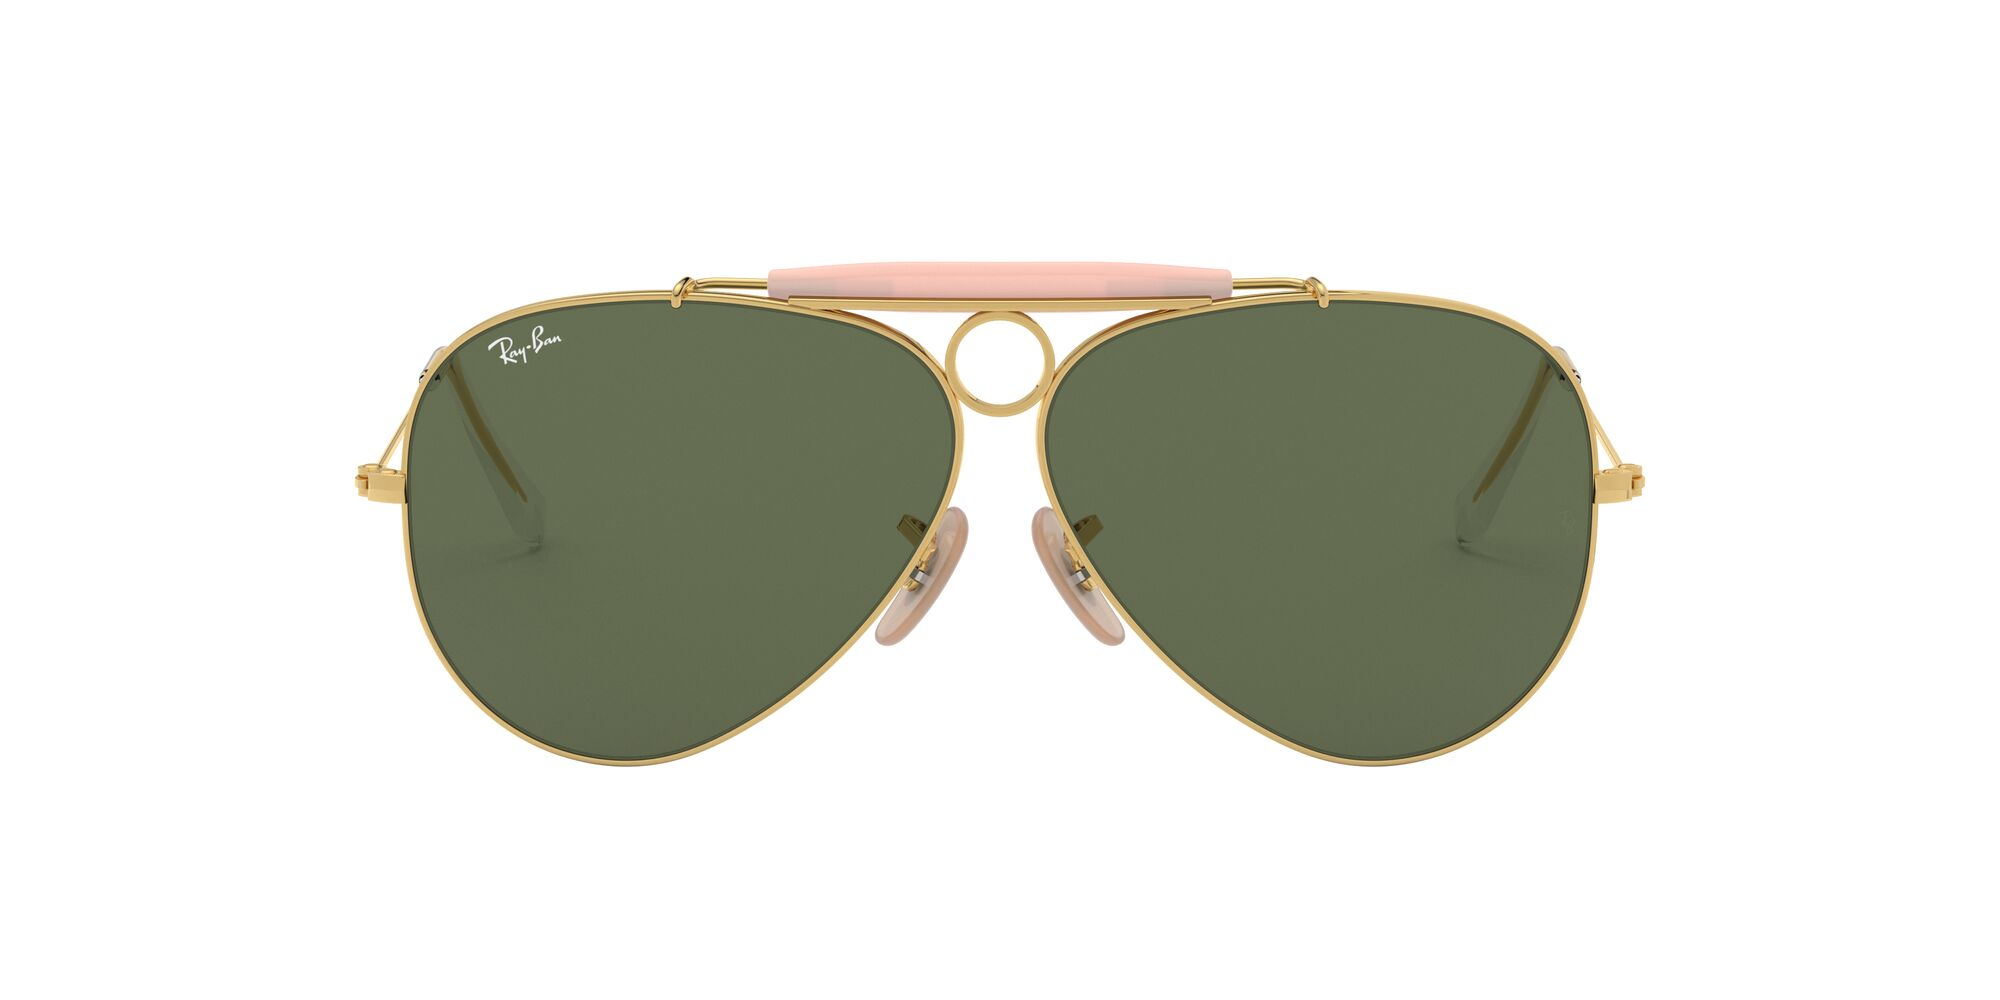 Front Ray-Ban Ray-Ban 0RB3138 001 58/9 Goud, Groen/Groen